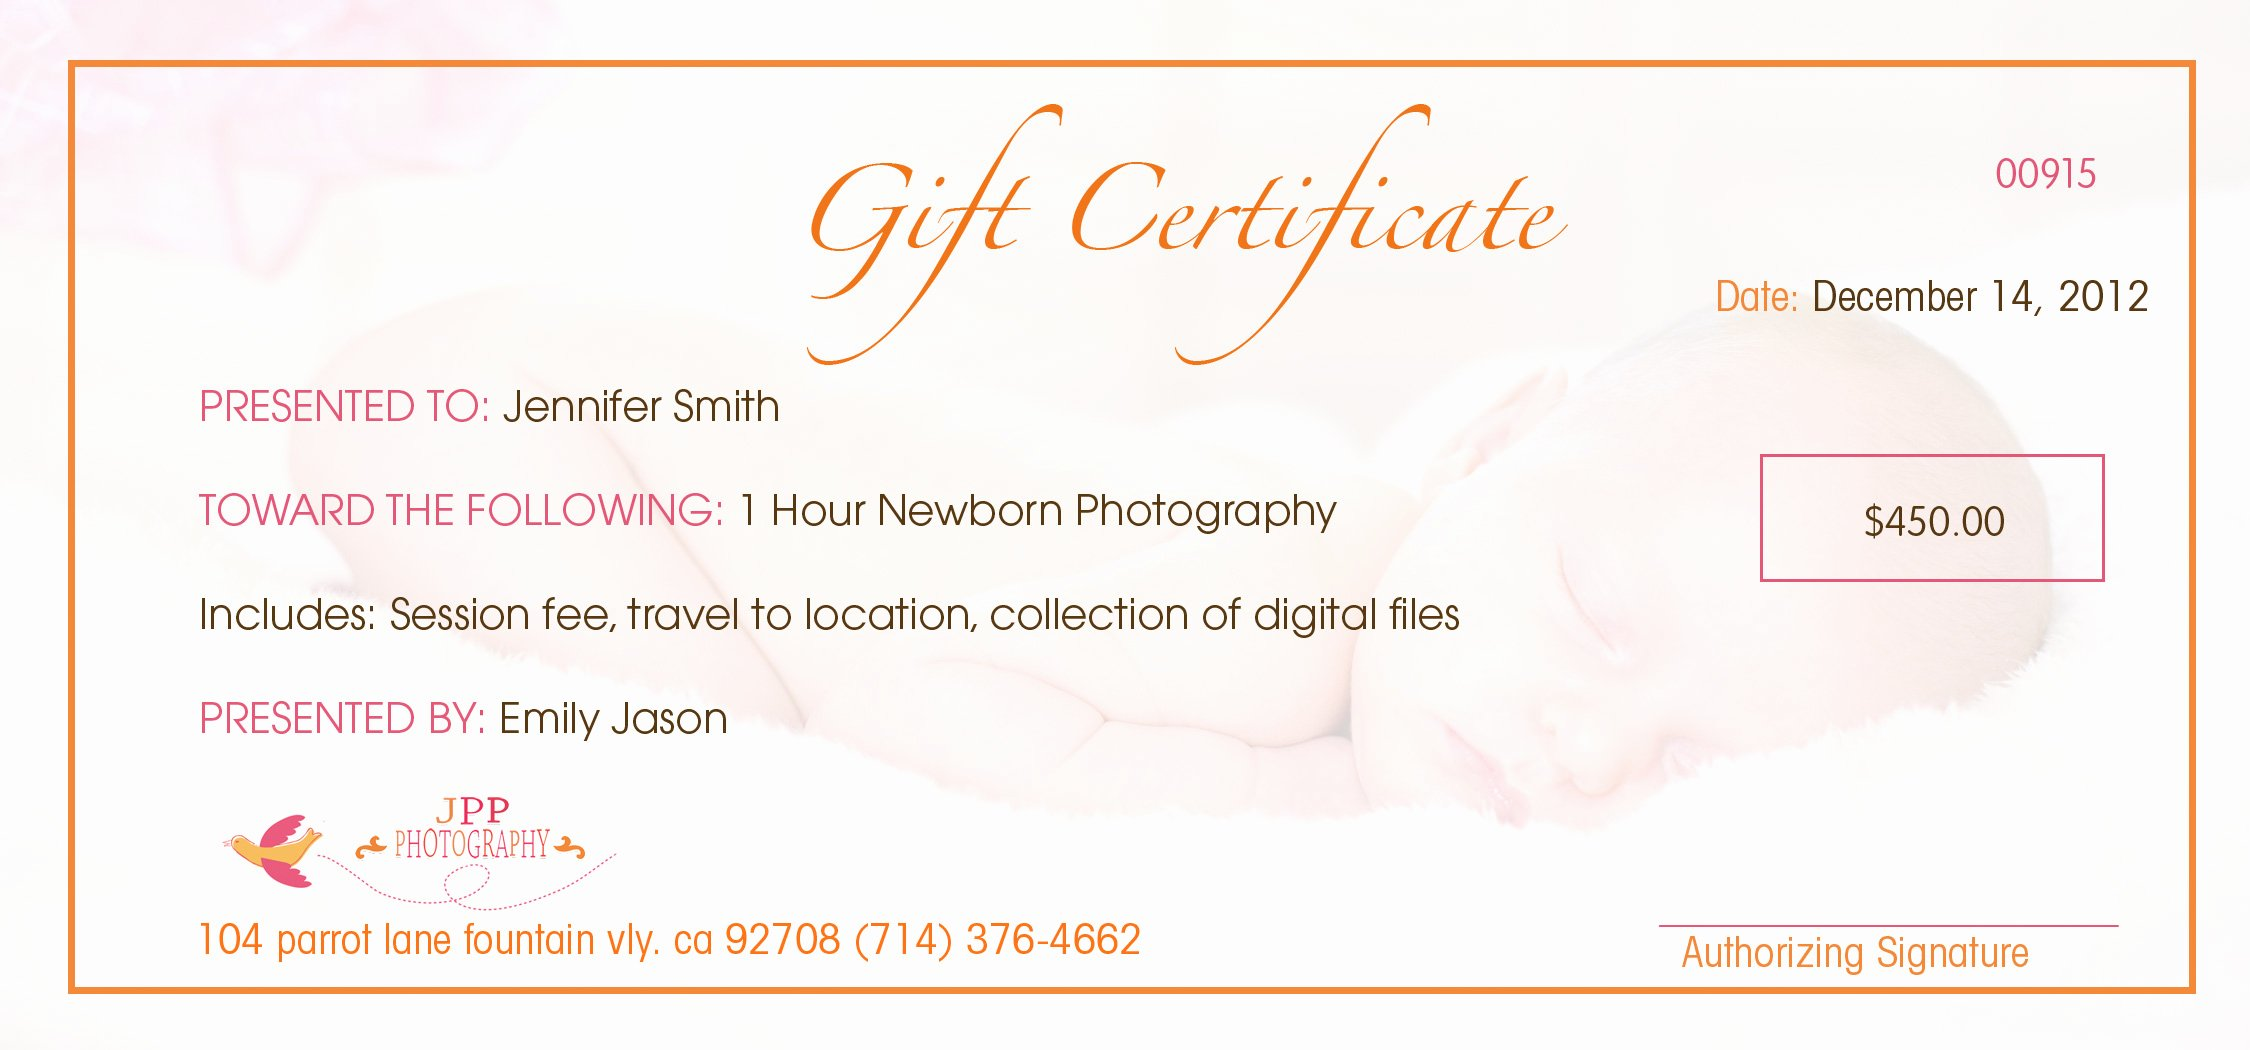 Wording for Gift Certificates Fresh Baby Gift Voucher Templatebaby Gift Voucher Template Hit